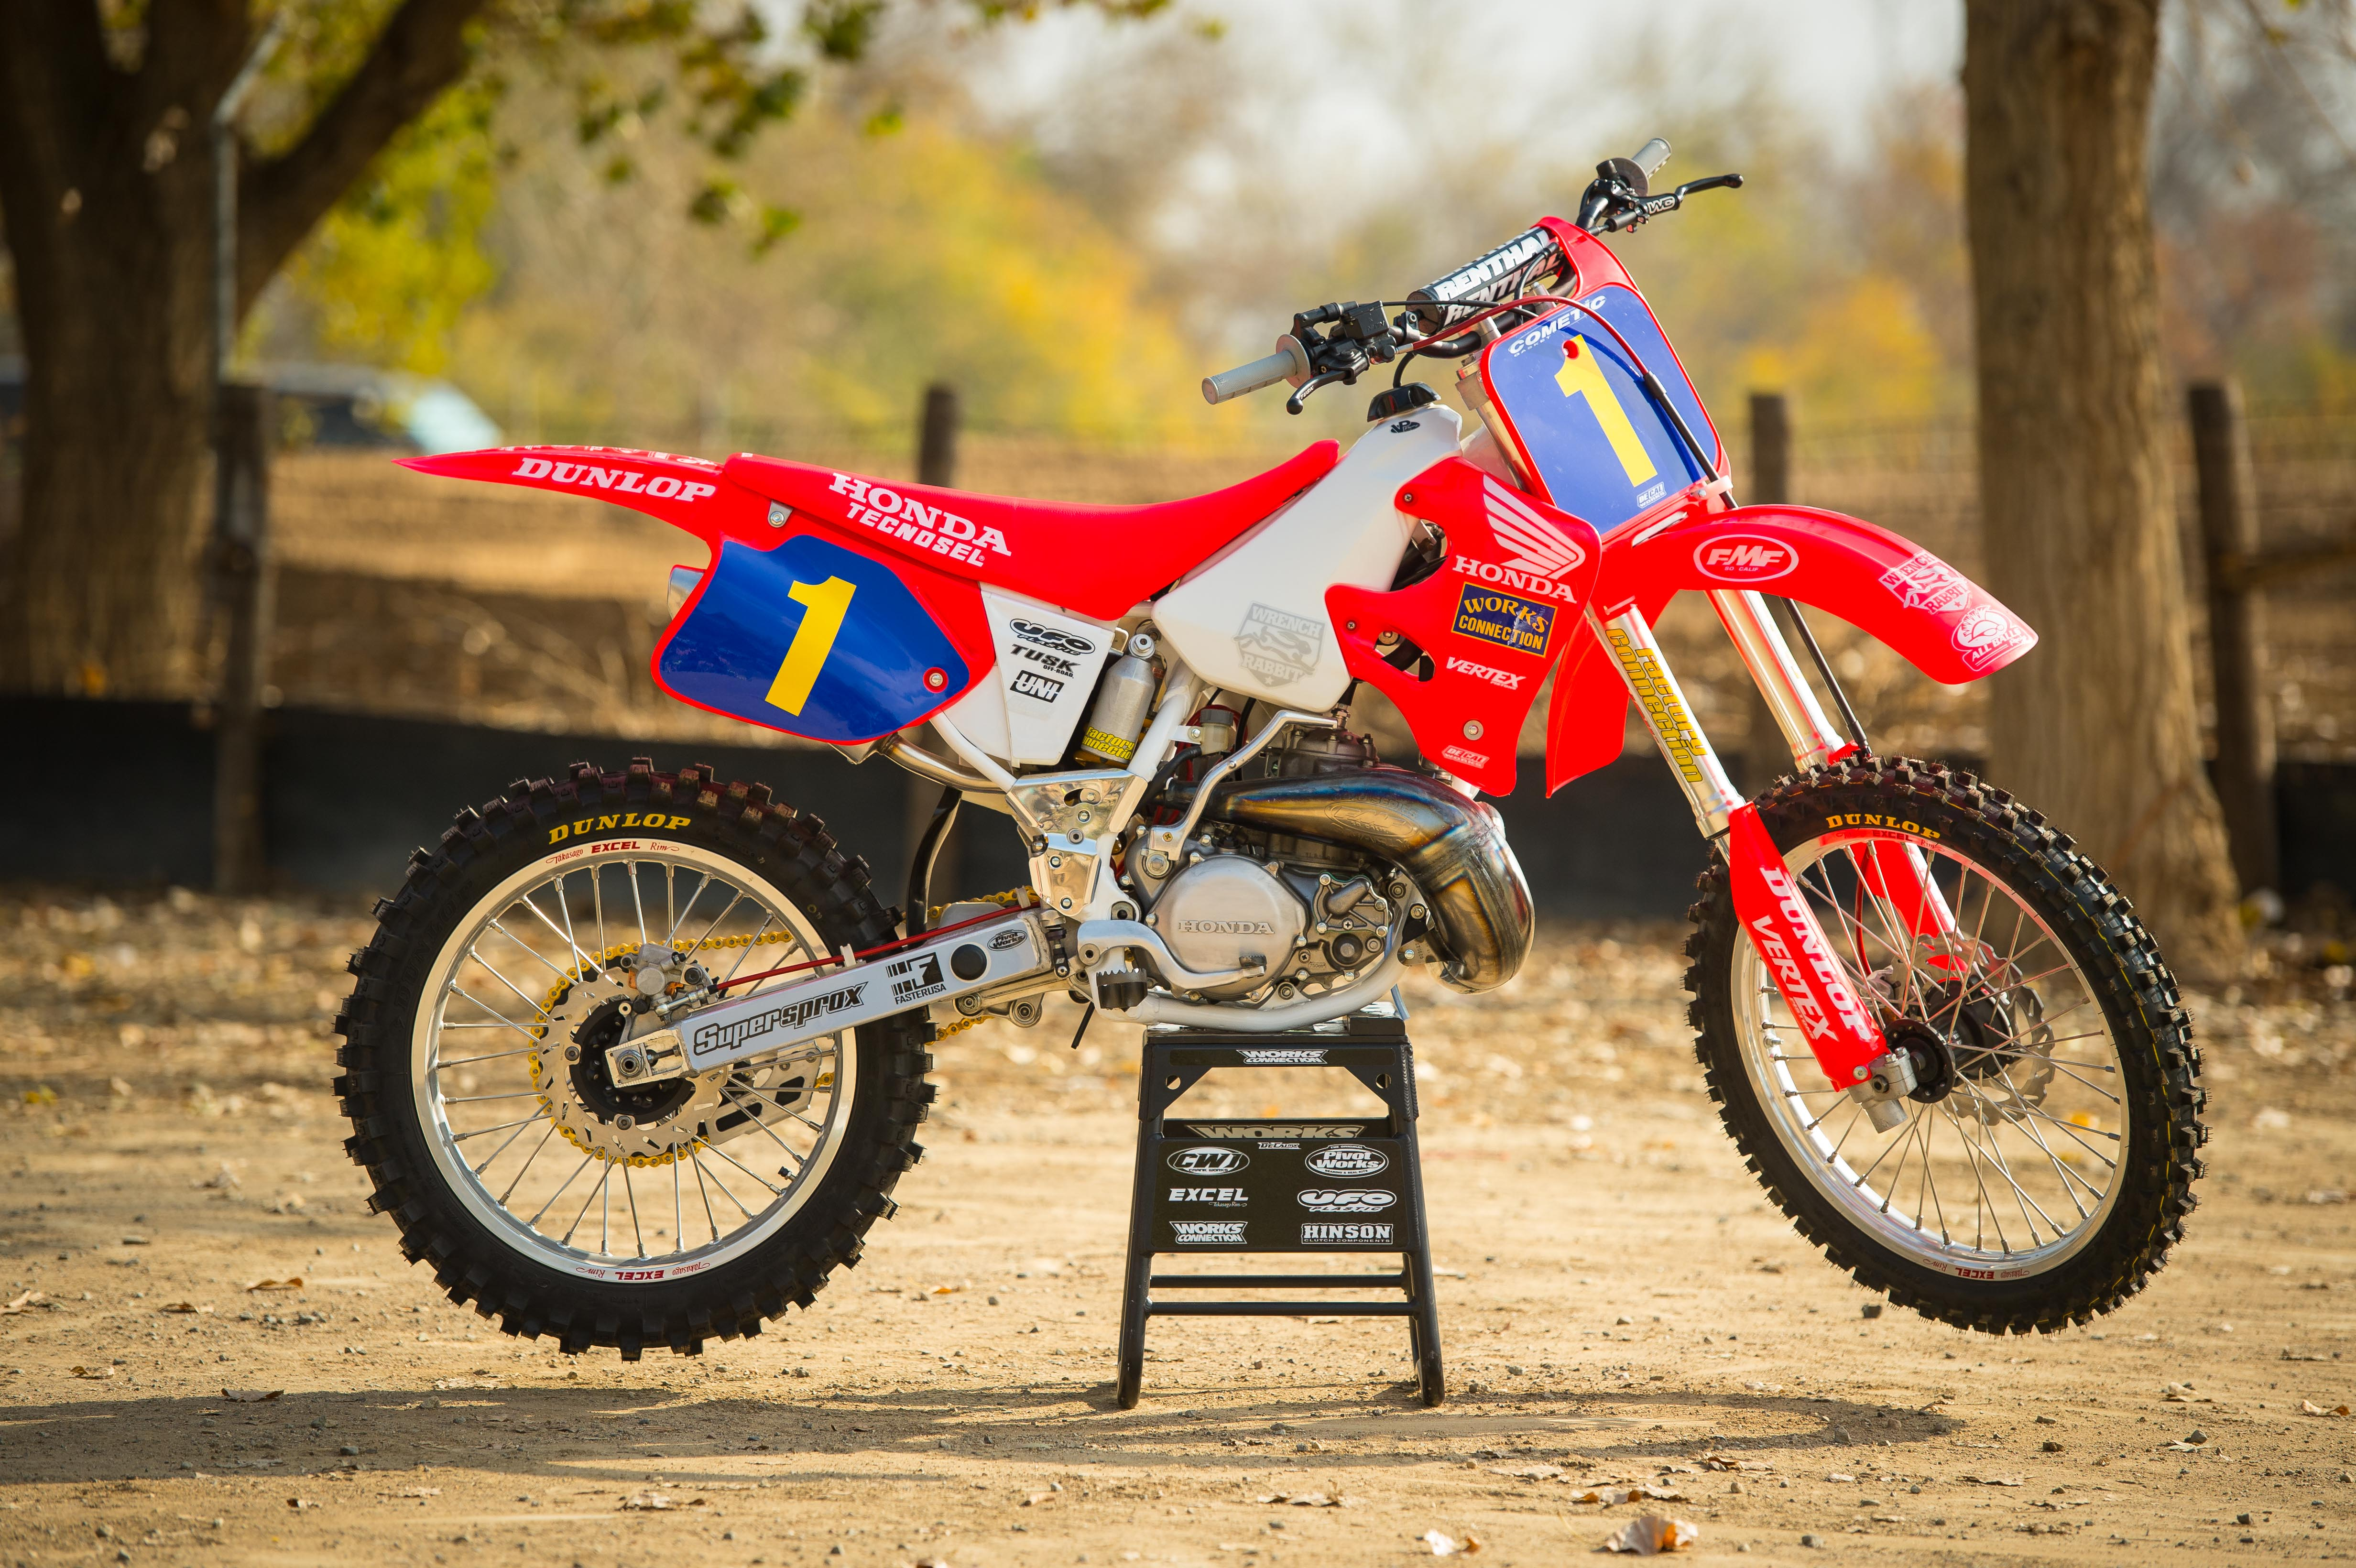 Here is the magazine story from the new Racer X on our Honda CR250R classic re-build.